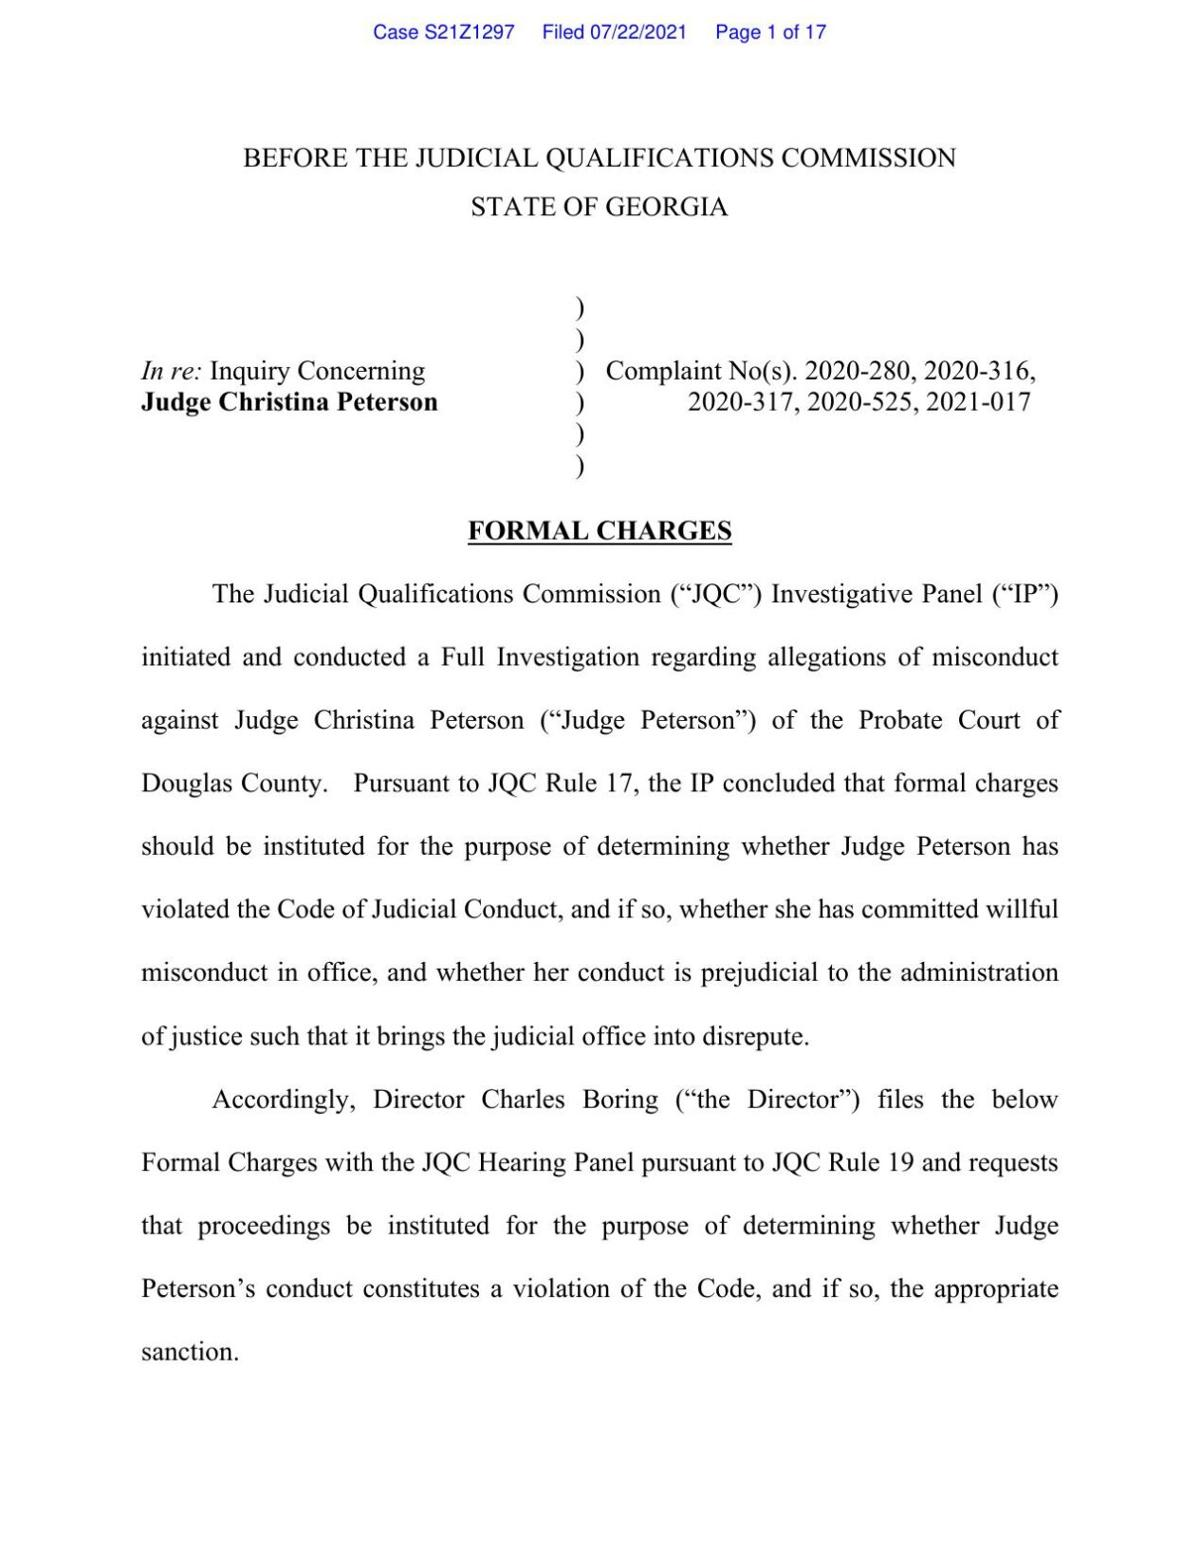 JQC Formal Charges — Judge Christina Peterson